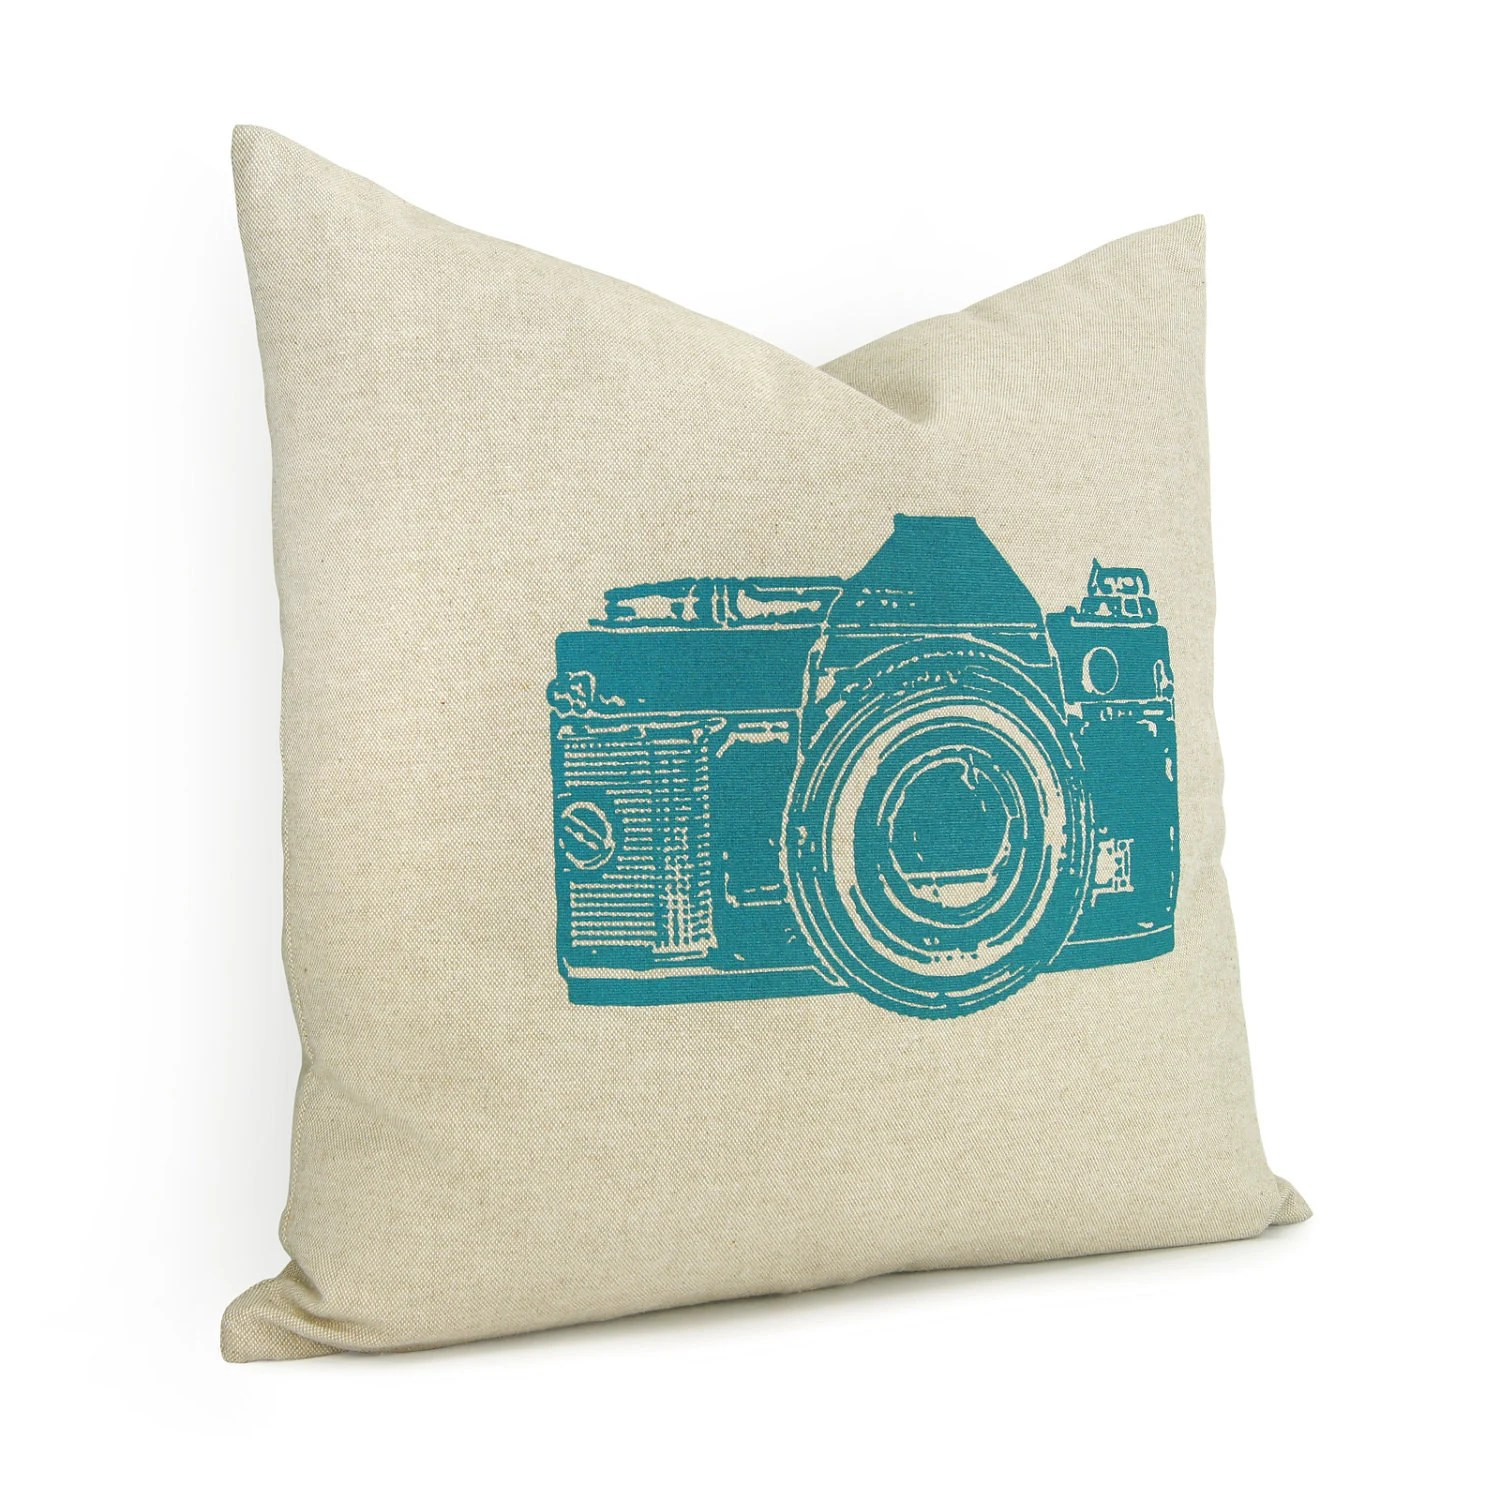 Camera pillow case - Teal blue vintage camera print on natural cotton canvas throw pillow case - 16x16 decorative pillow cover